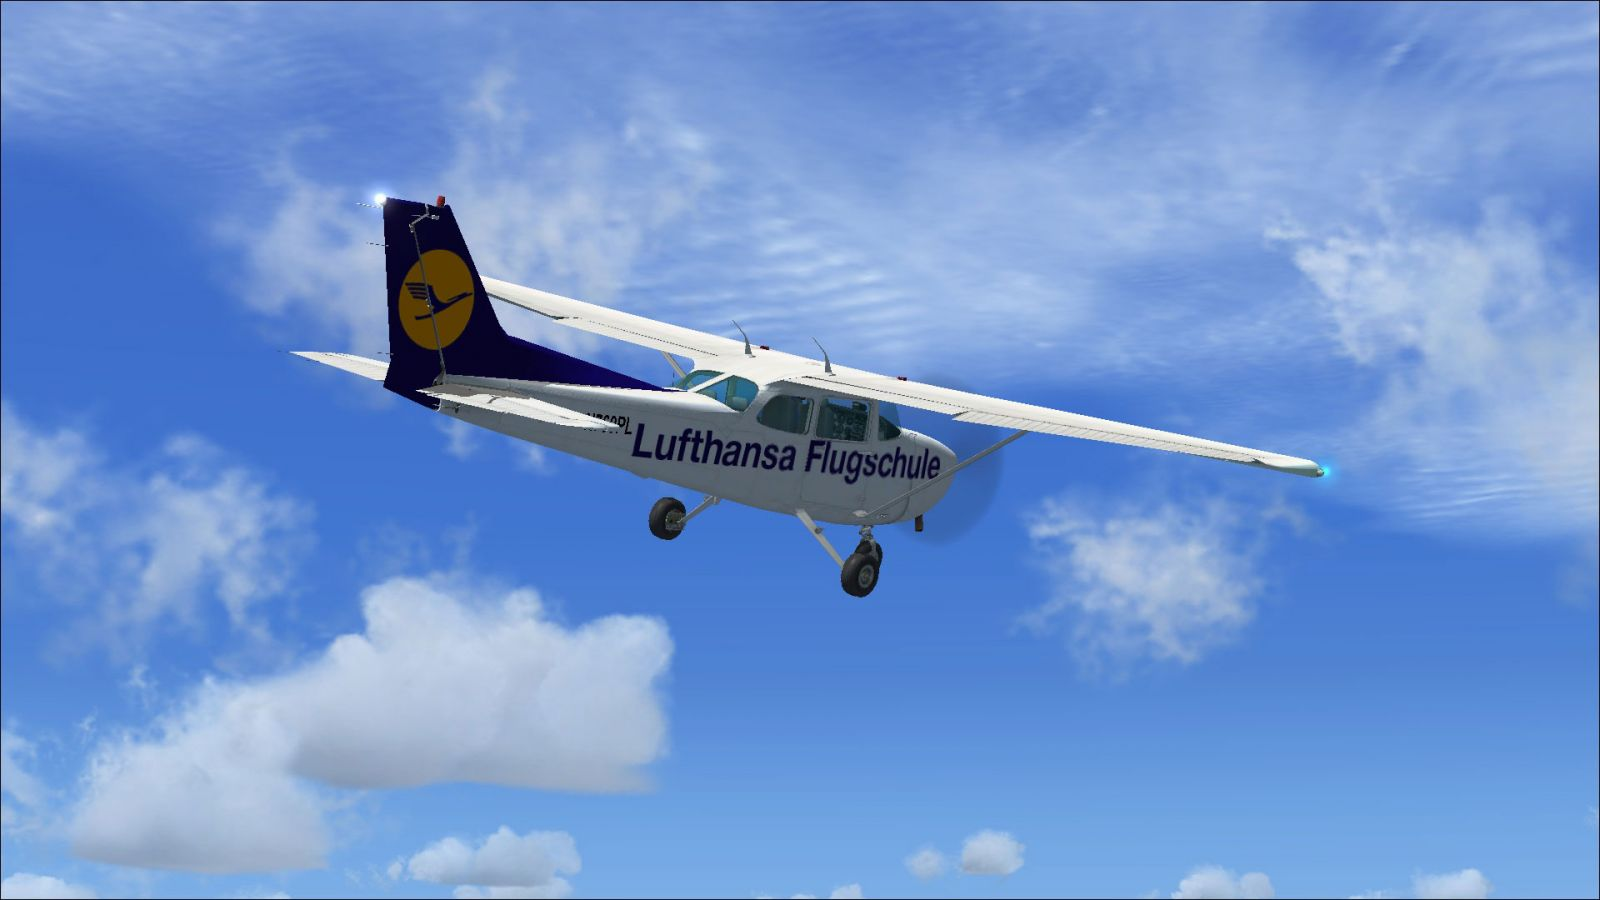 lufthansa flightschool cessna 172 for fsx. Black Bedroom Furniture Sets. Home Design Ideas